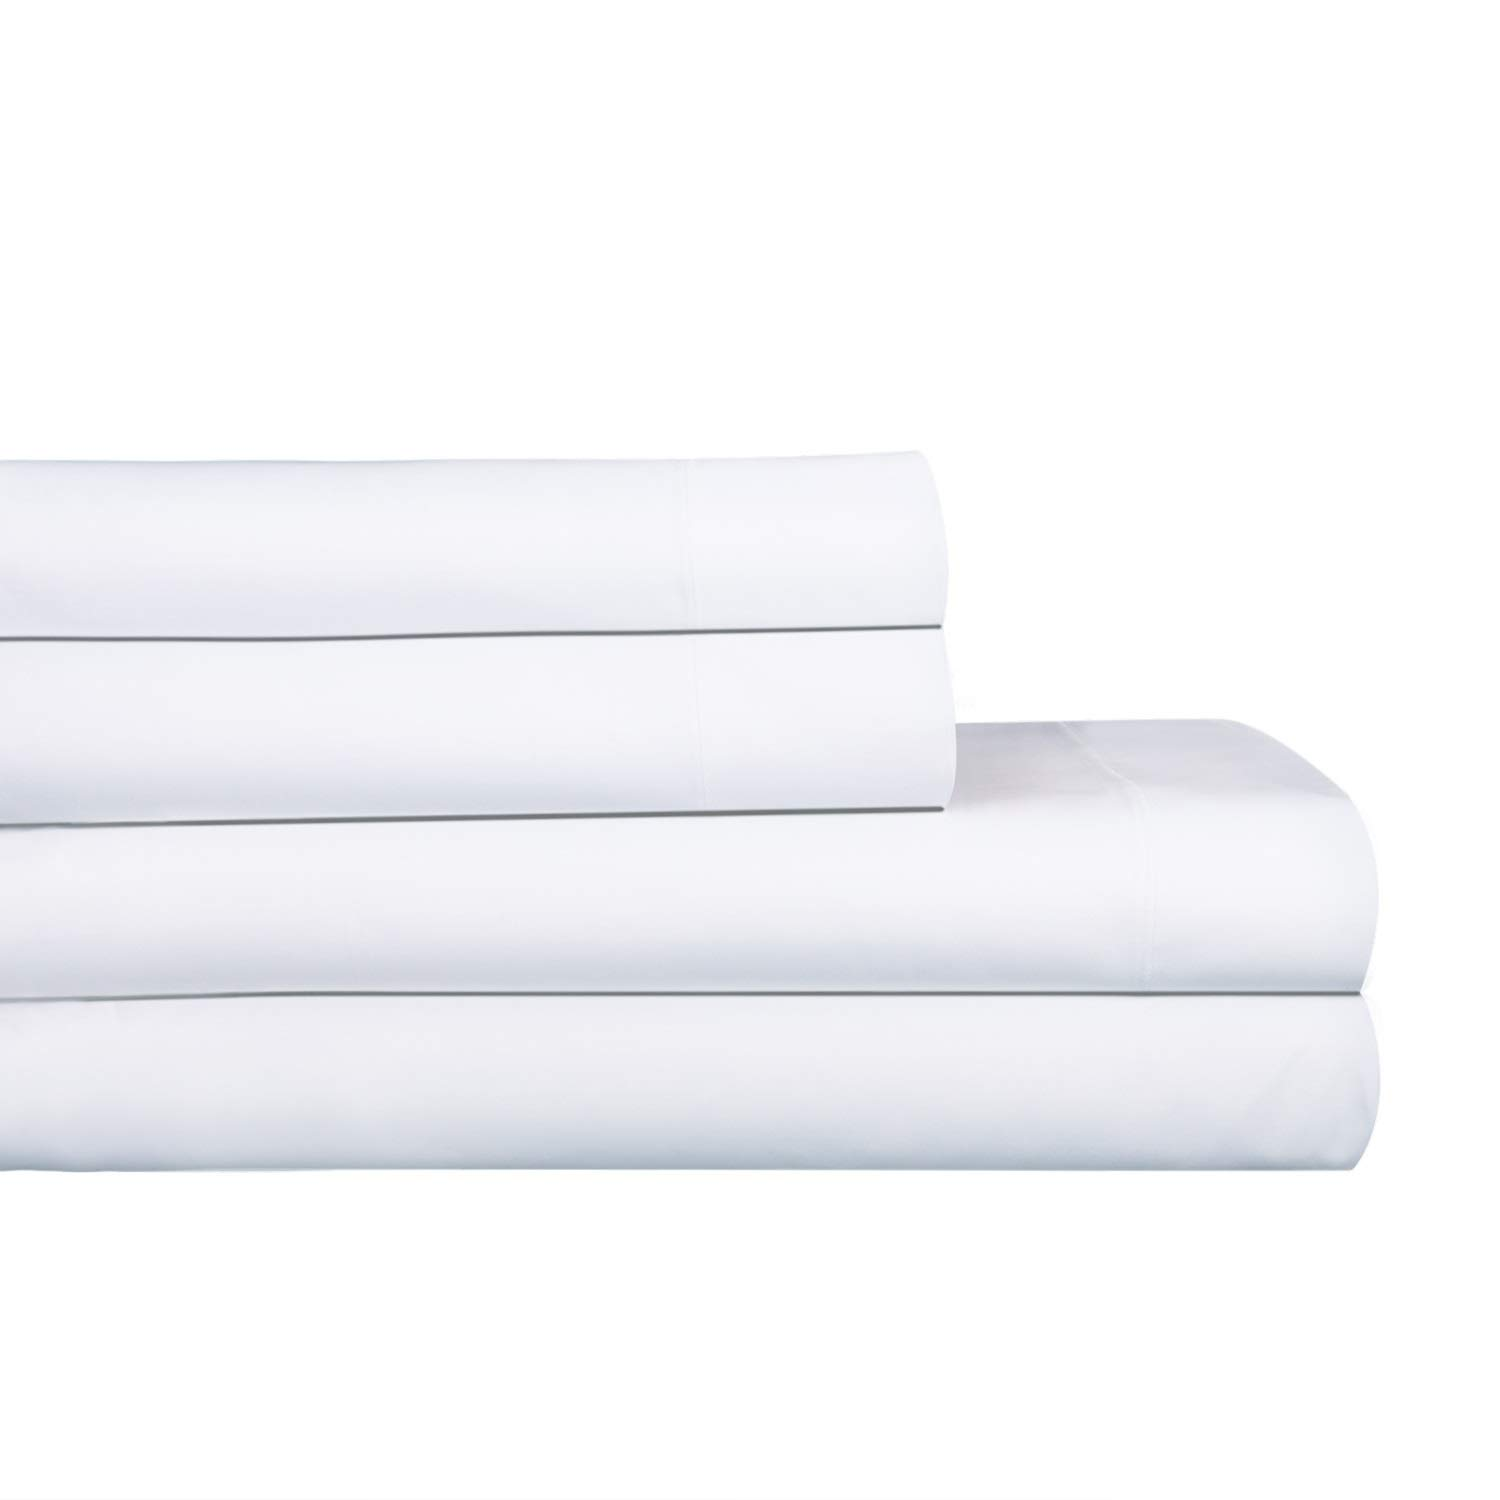 """AURAA Royale 1000 Thread Count 100% American Supima Long Staple Cotton Sheet Set,4 Pc Set, King Sheets Sateen Weave,Hotel Collection Luxury Bedding,Upto 18"""" Deep Pocket,White"""